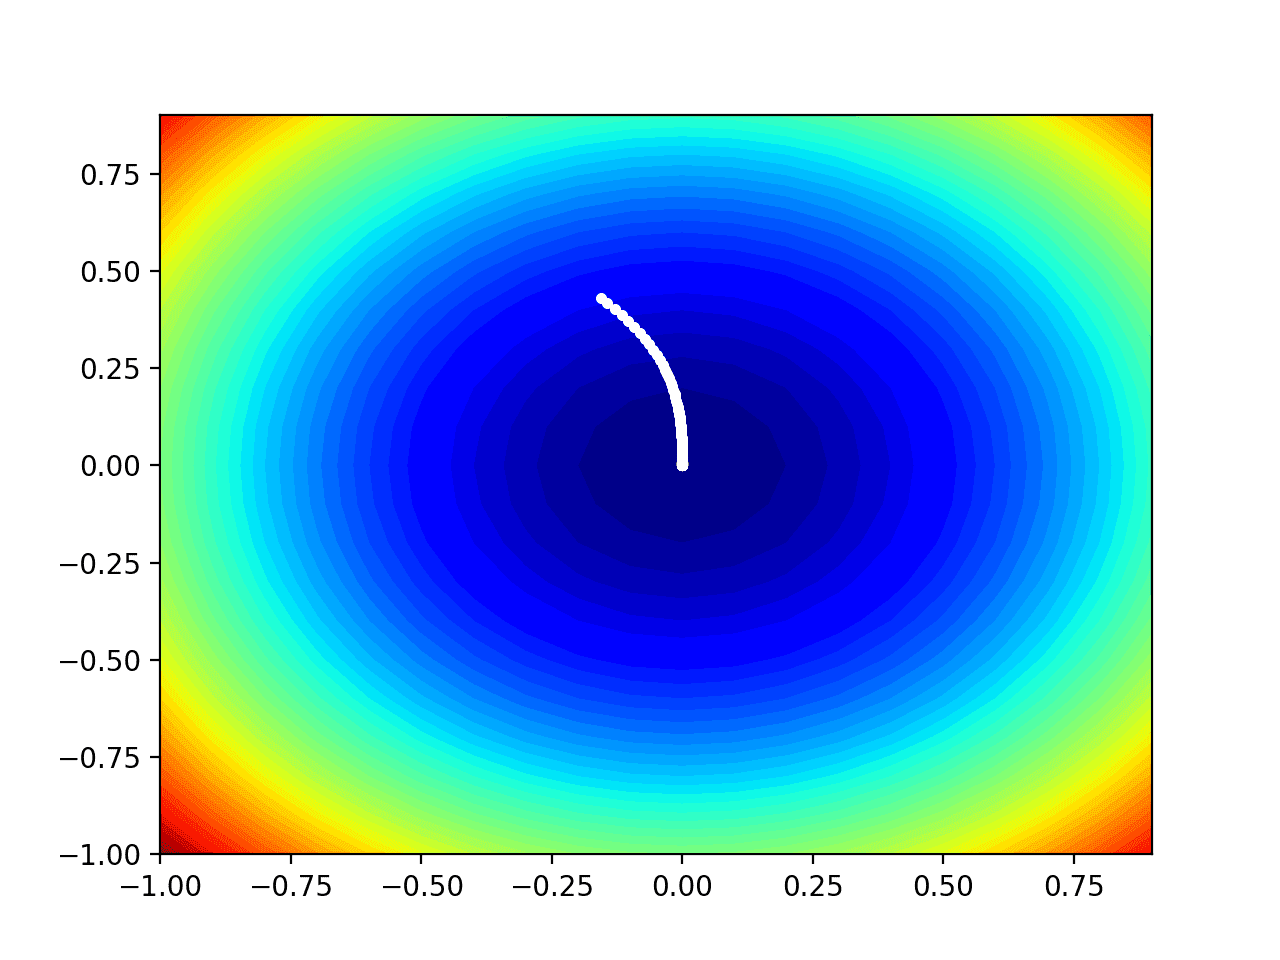 Contour Plot of the Test Objective Function With Adadelta Search Results Shown